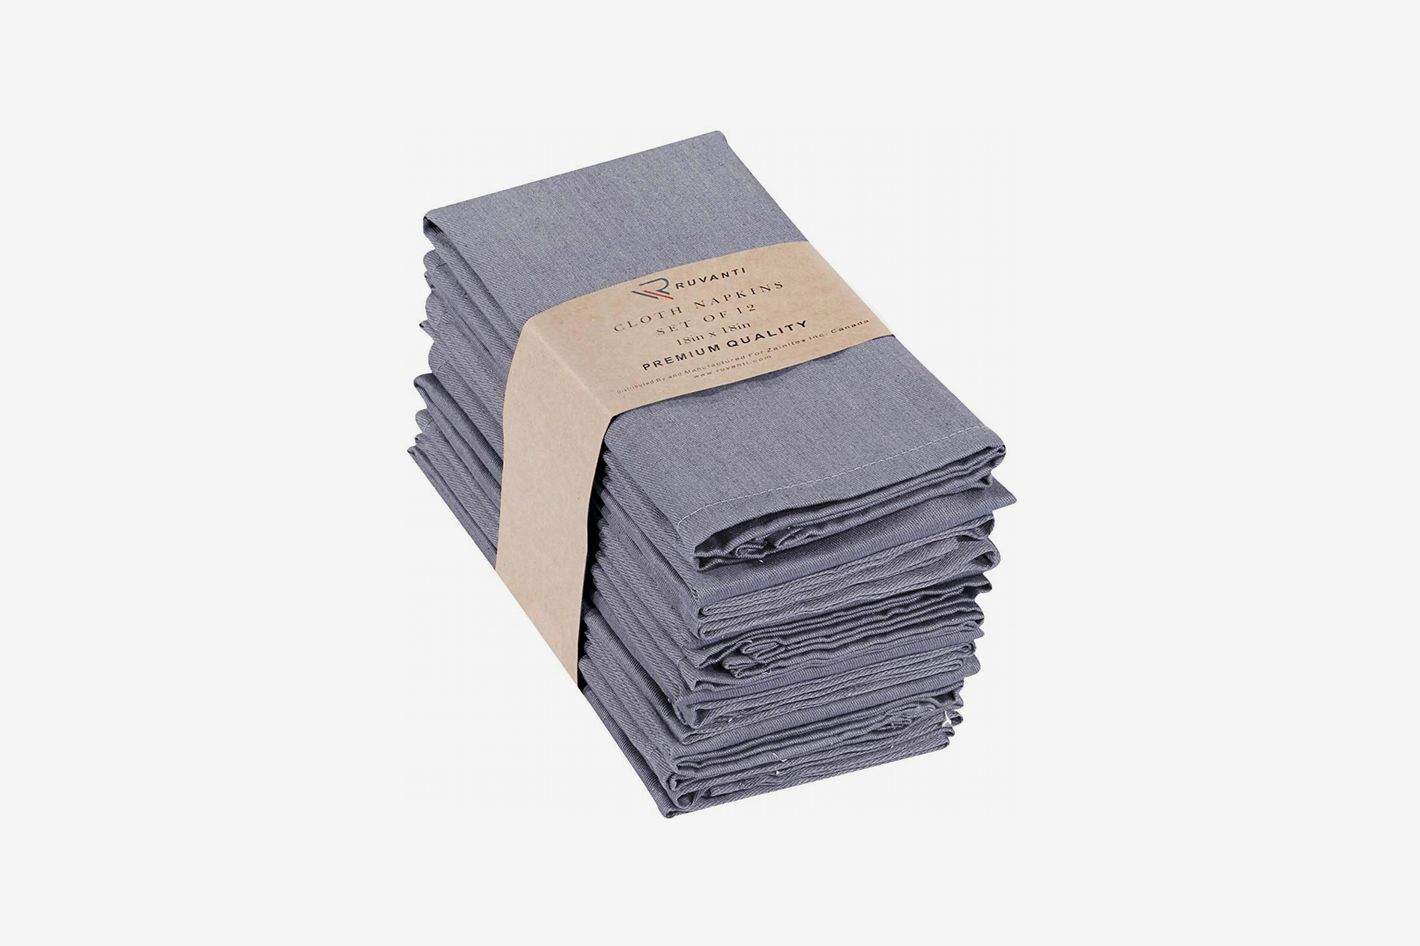 Ruvanti Cotton Dinner Napkins